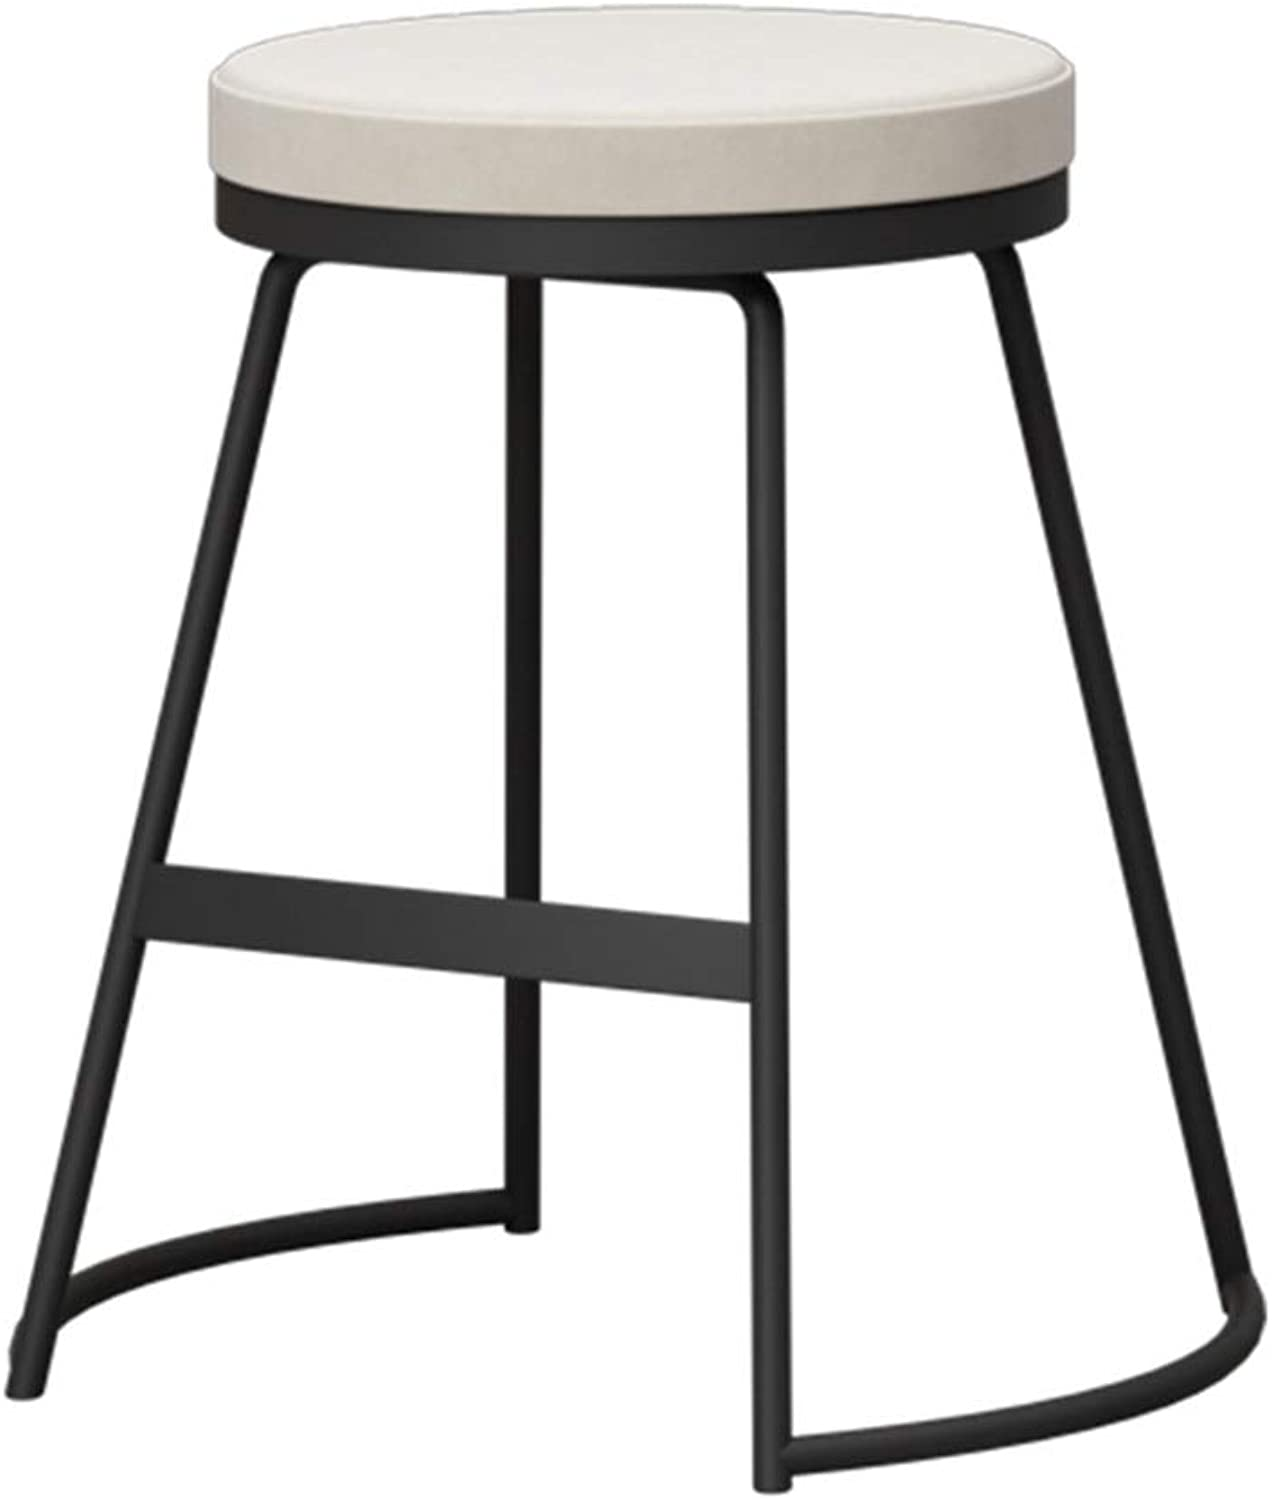 Barstools Chair Bar Stool High Chair Breakfast Stool Dining Stool and Comfort Seat Kitchen Breakfast Counter (53x35x45 65 75) cm (Size   53x35x45cm)